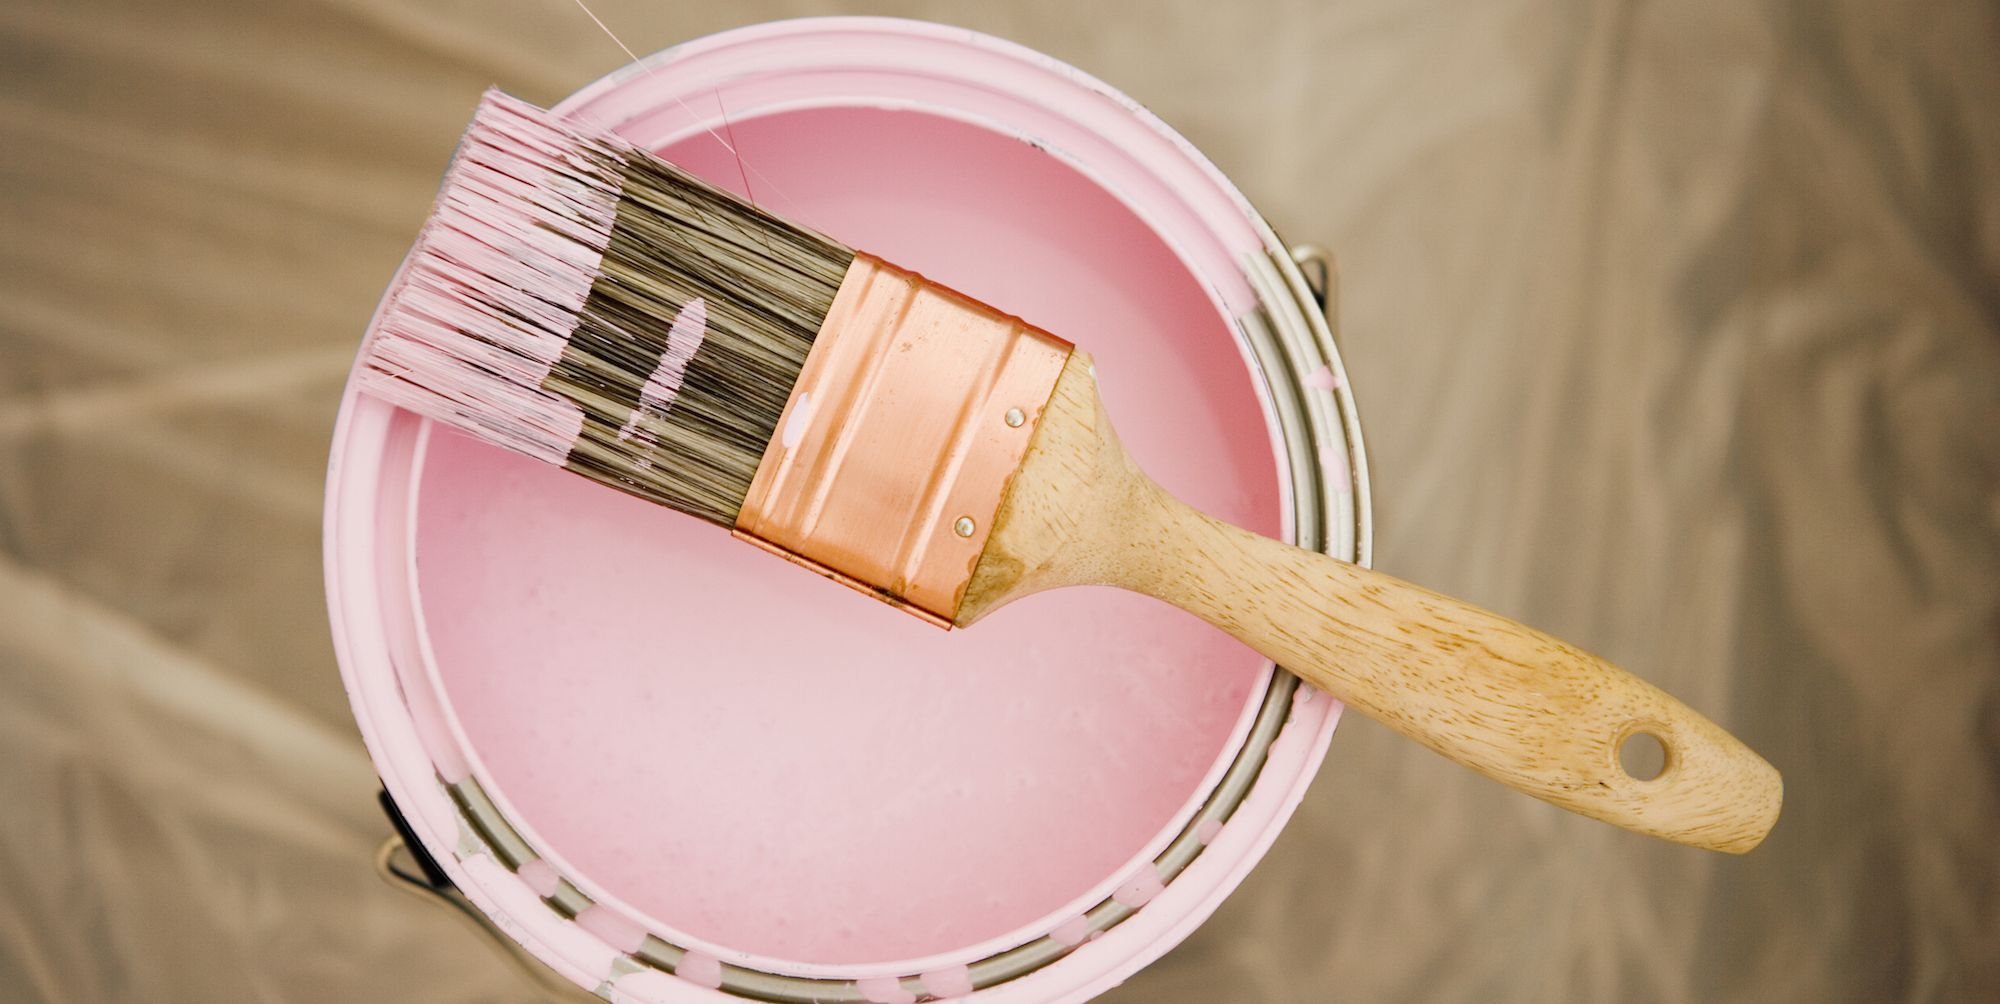 14 Best Pink Paint Colors, According To Interior Designers